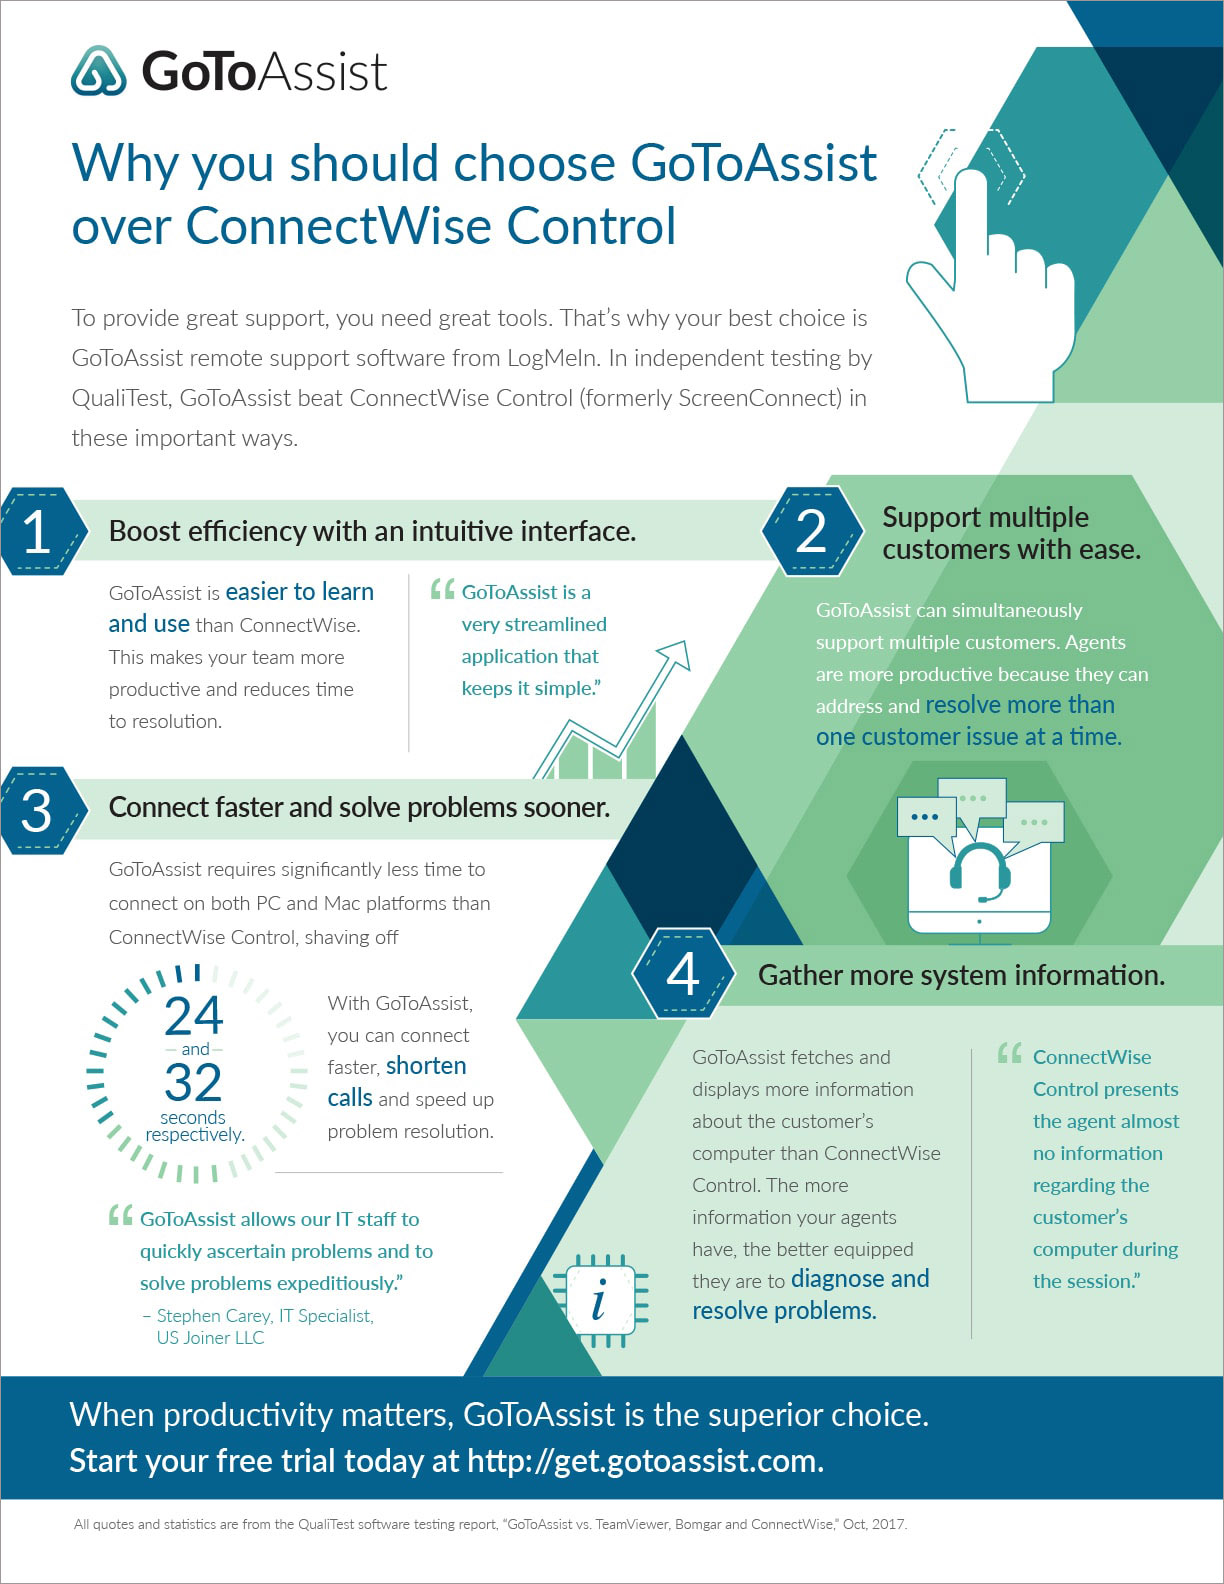 GoToAssist over ConnectWise